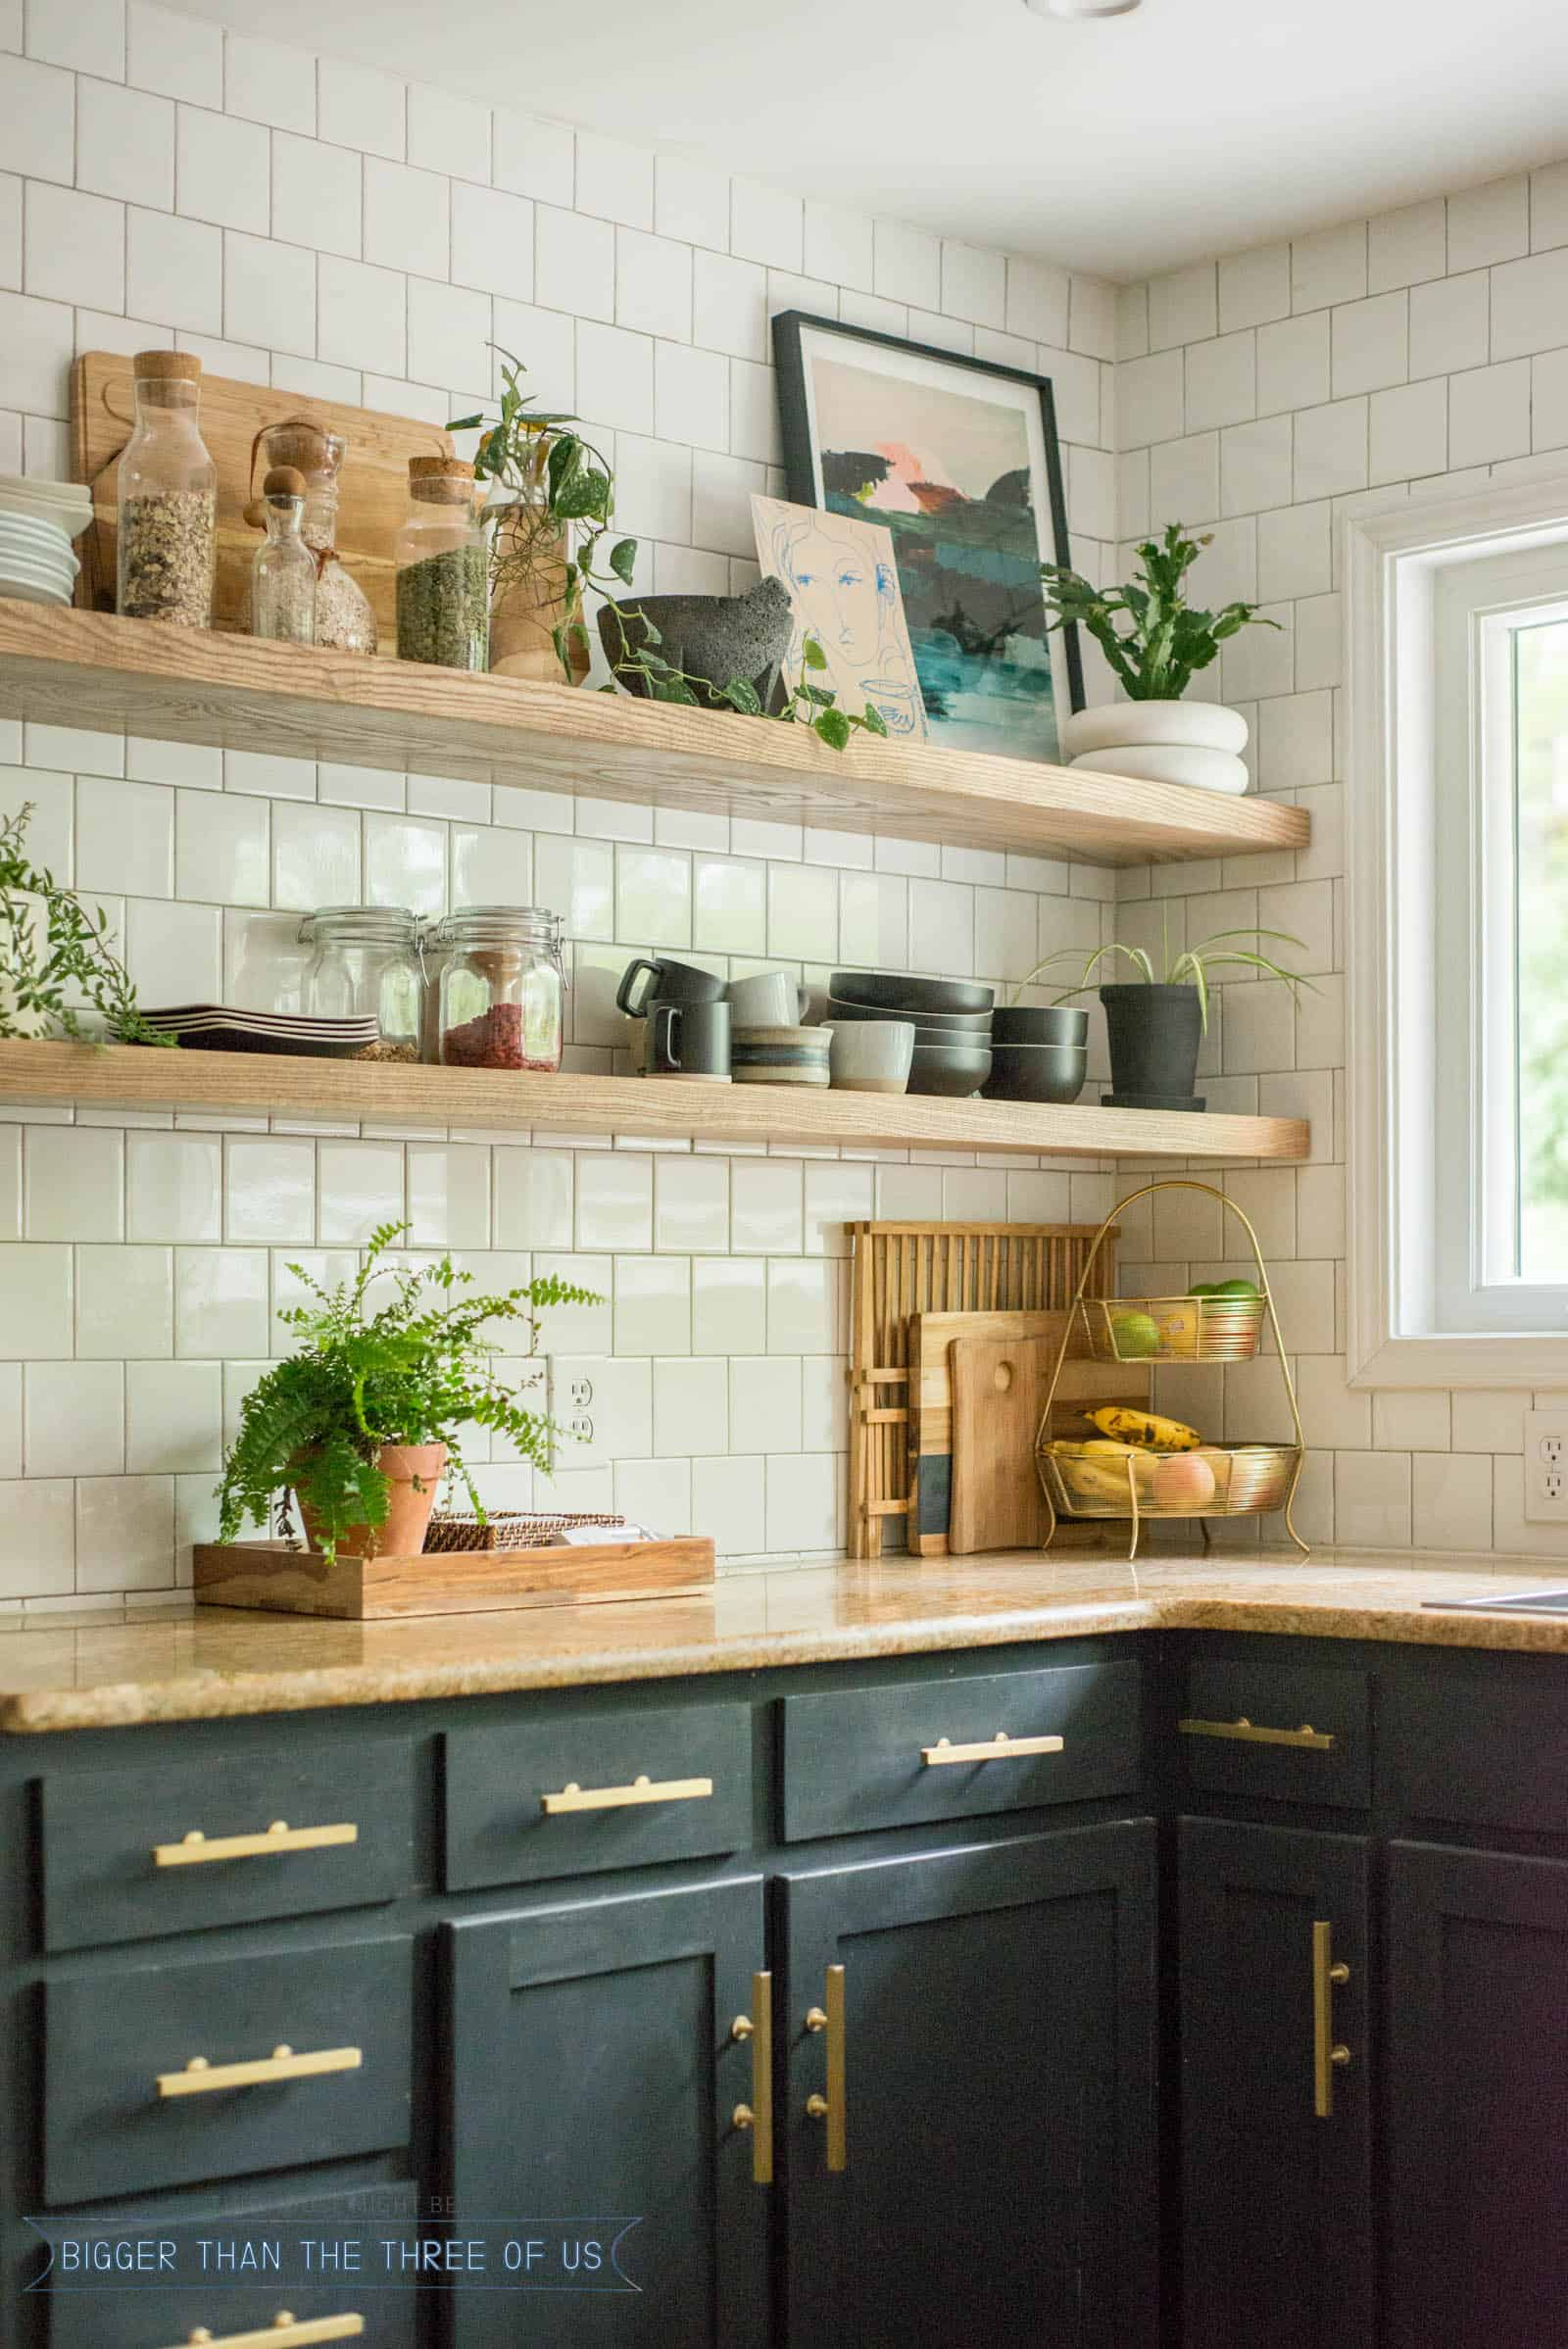 diy open shelving kitchen guide bigger than the three floating shelves that hold lot weight black laminate countertop ideas wall mount hanger cabinet utensil holder homemade shoe